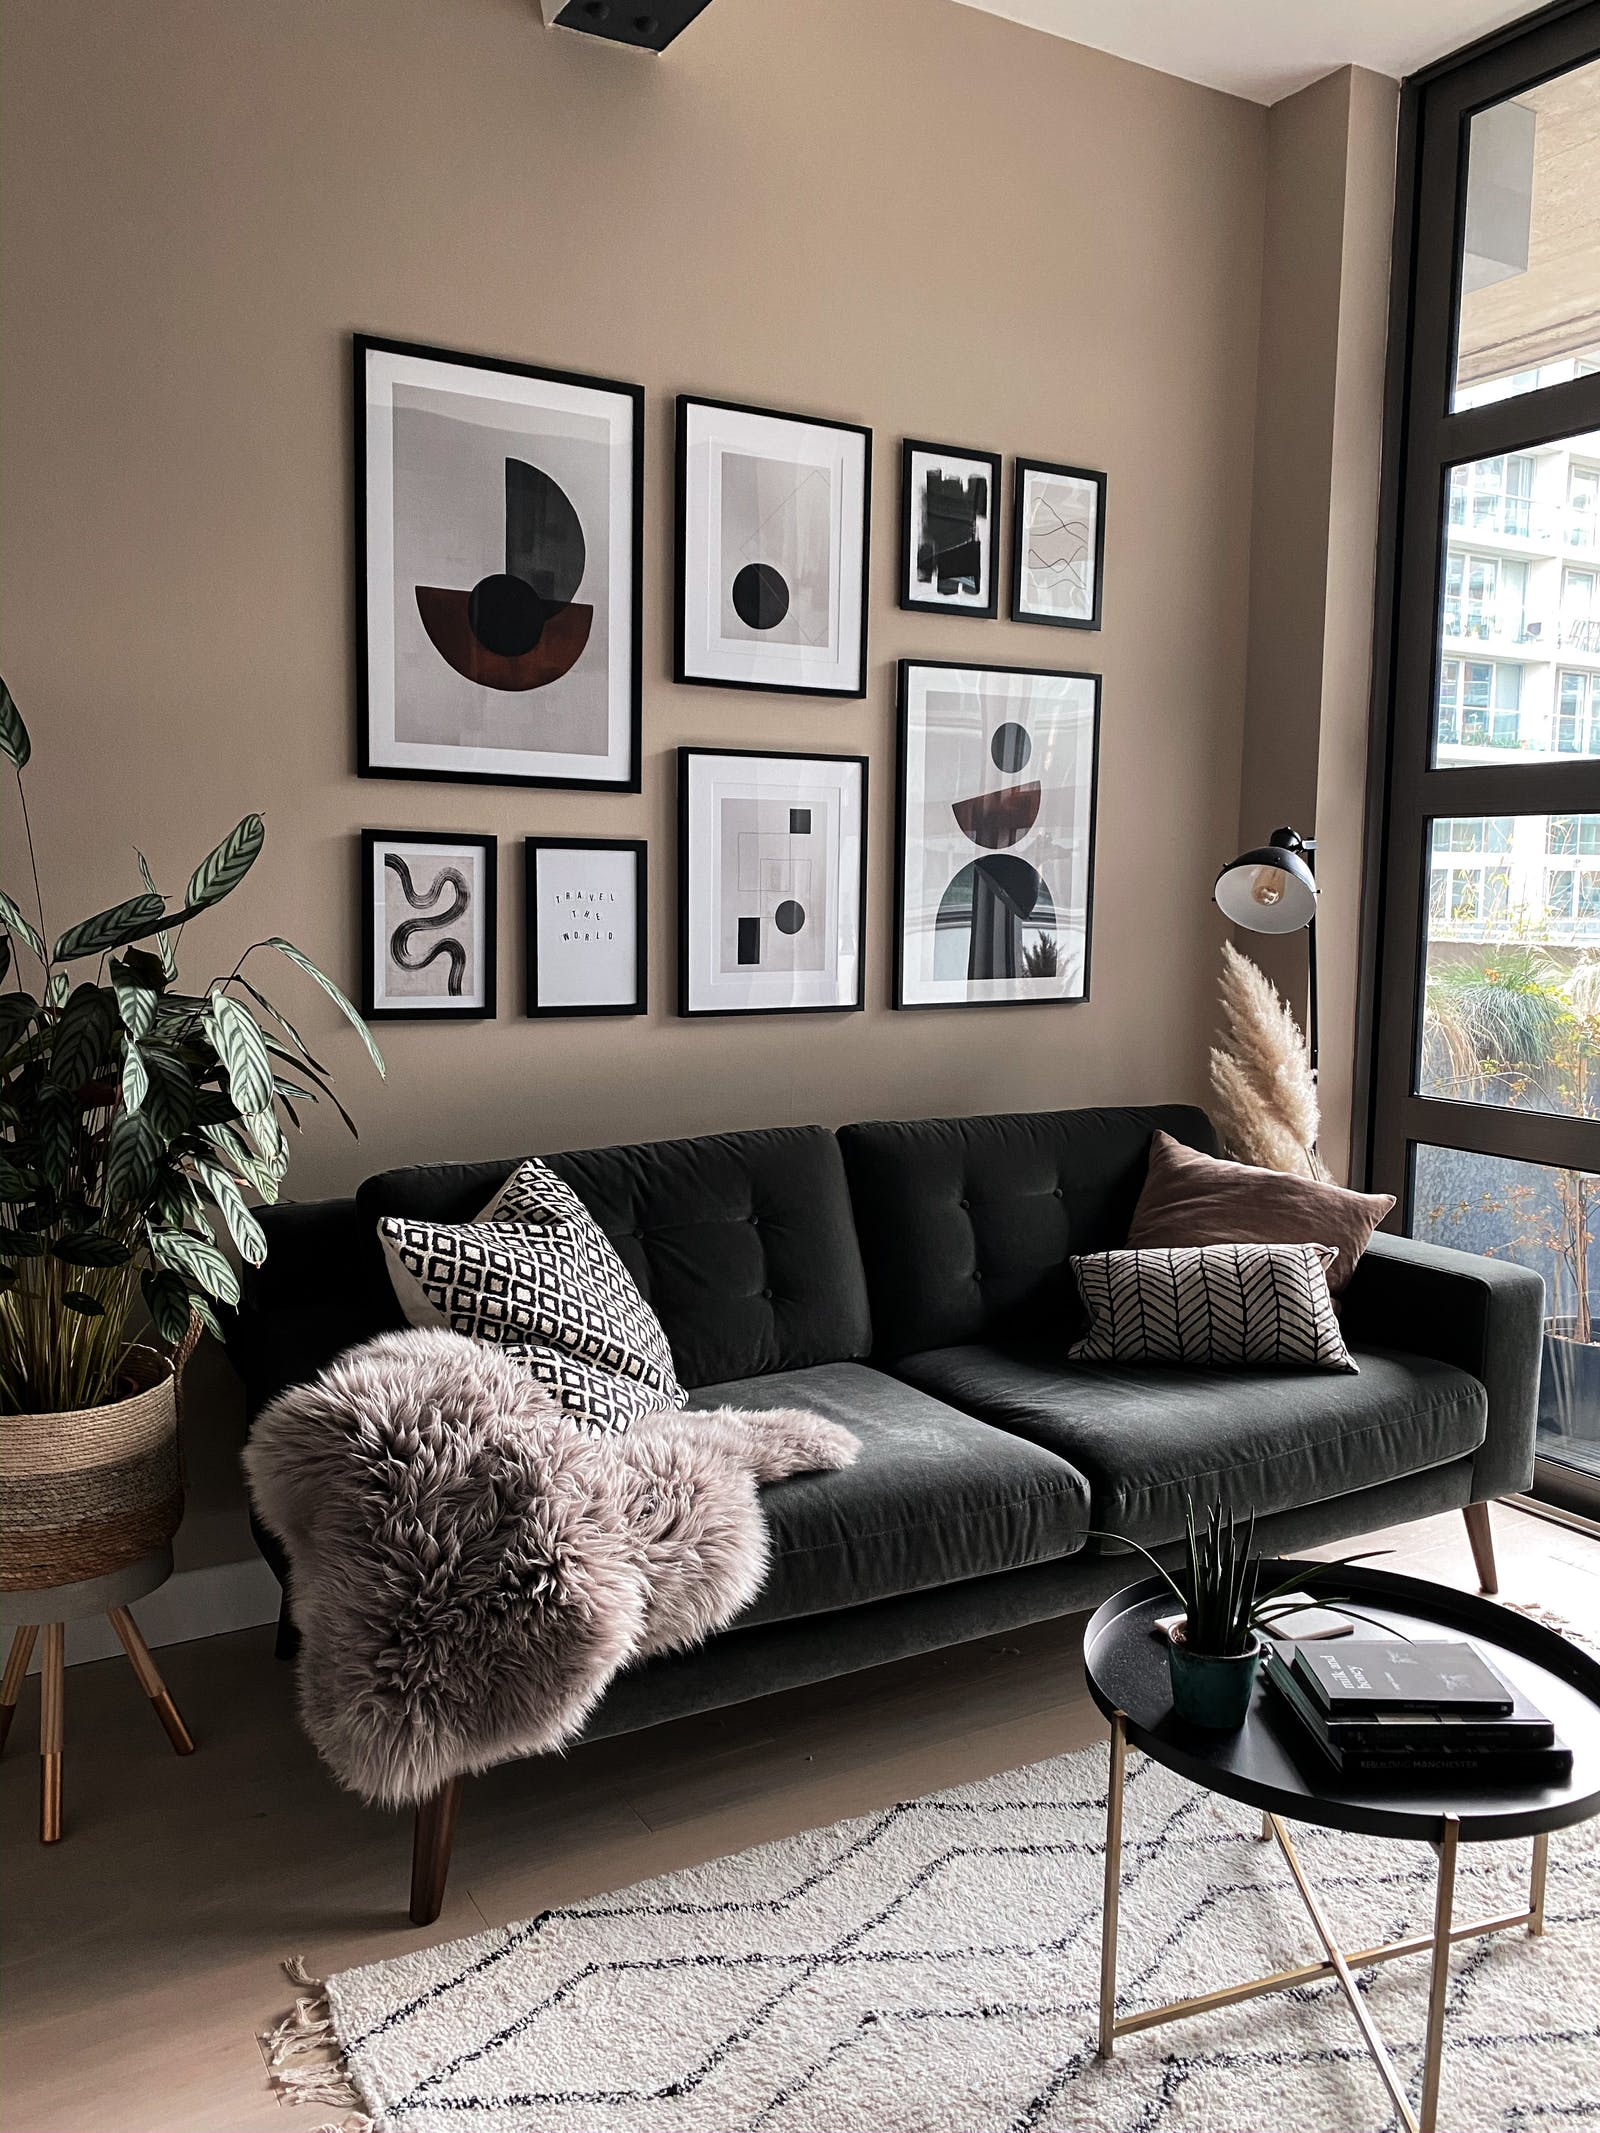 Living room with a dark sofa in front of a beige gallery wall